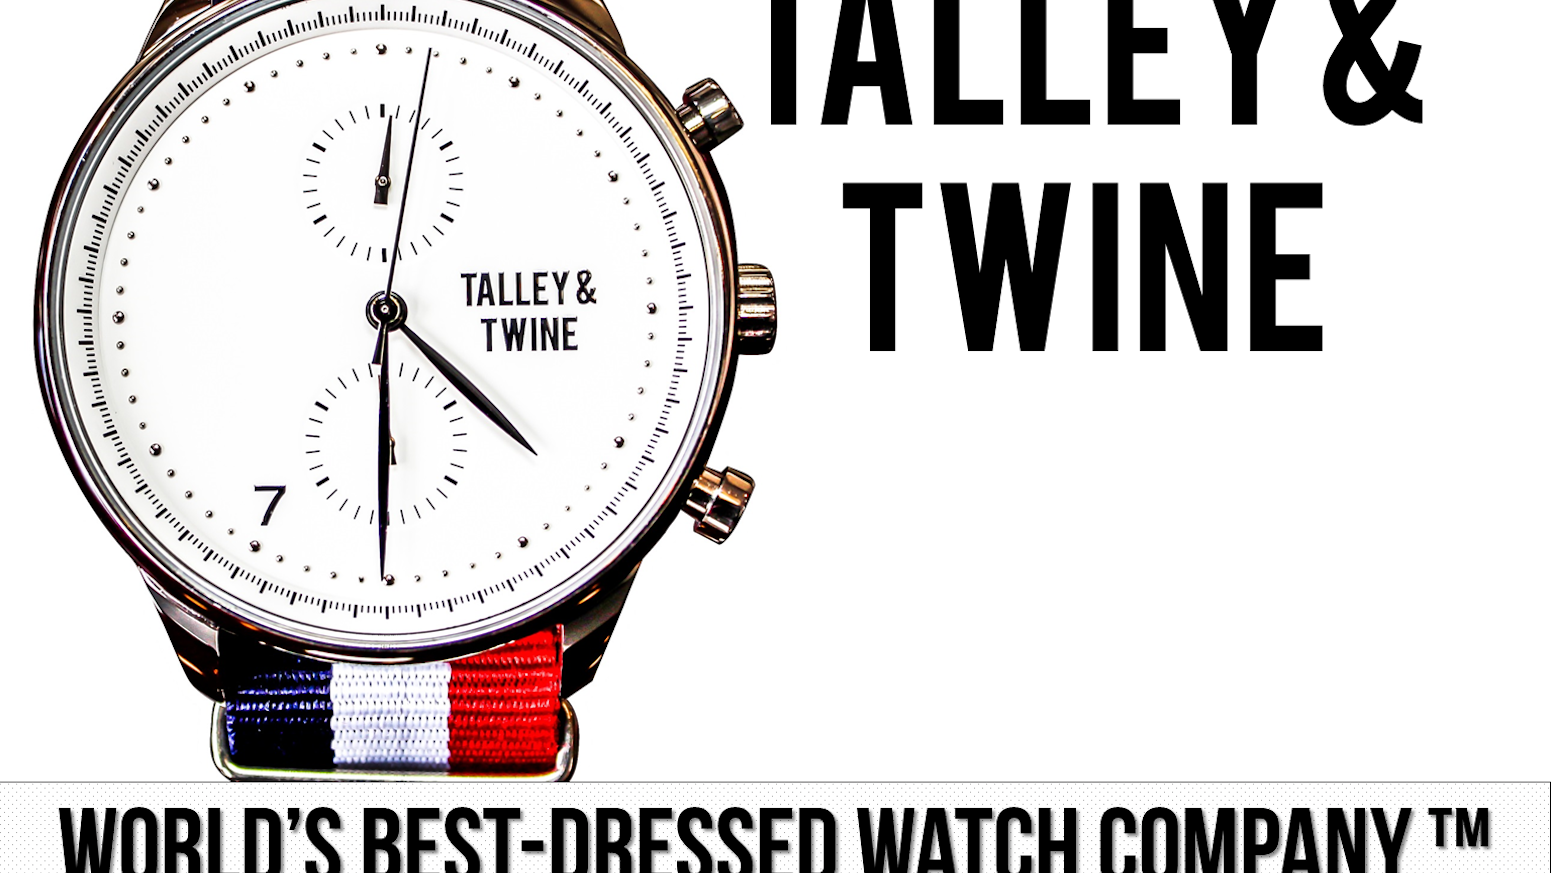 Watch] Talley & Twine: World's Best-Dressed Watch Company by Randy ...